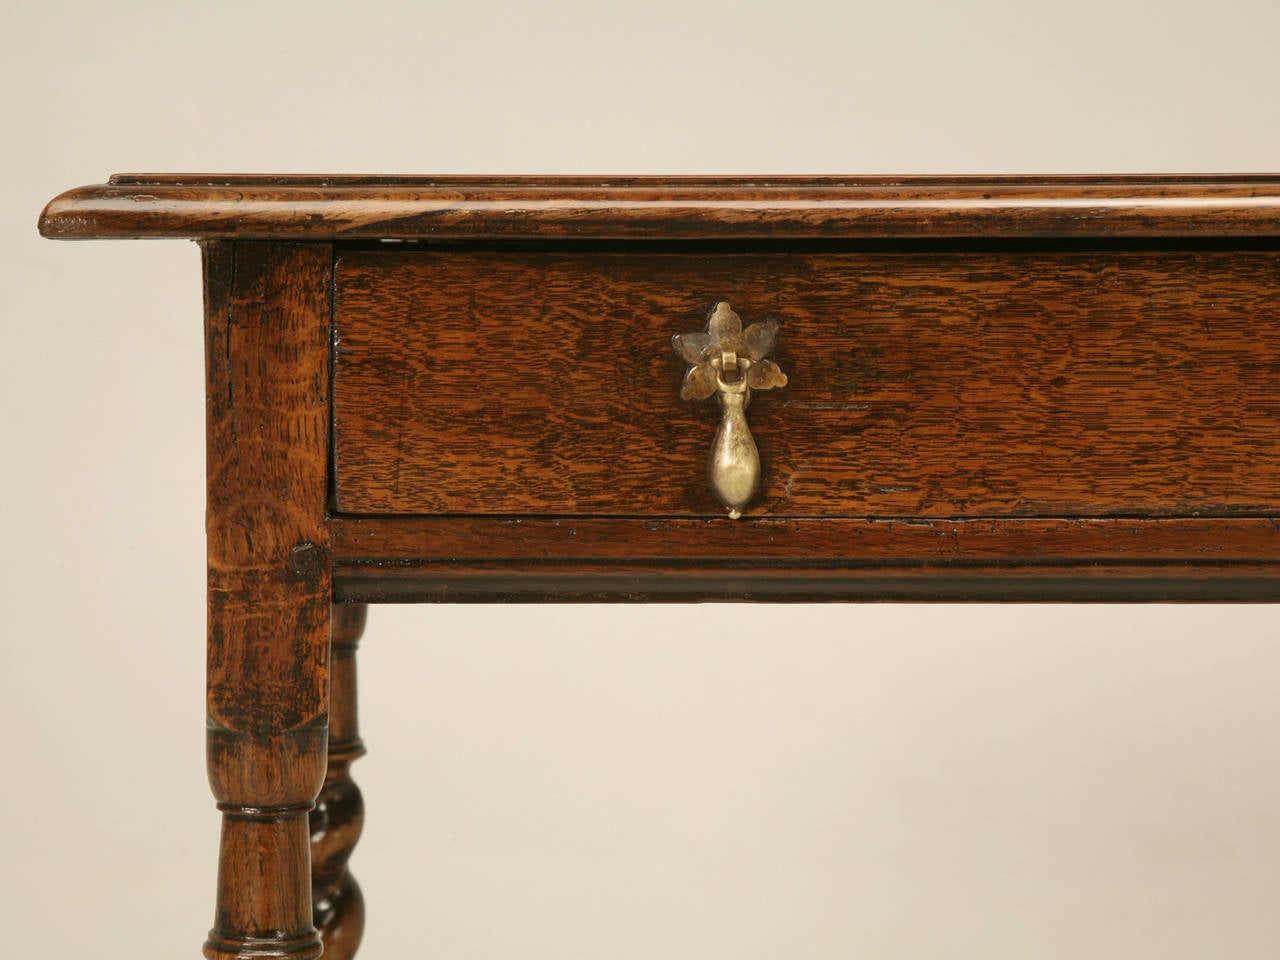 English Country Style Writing Desk or End Table, circa 1700s For Sale 4